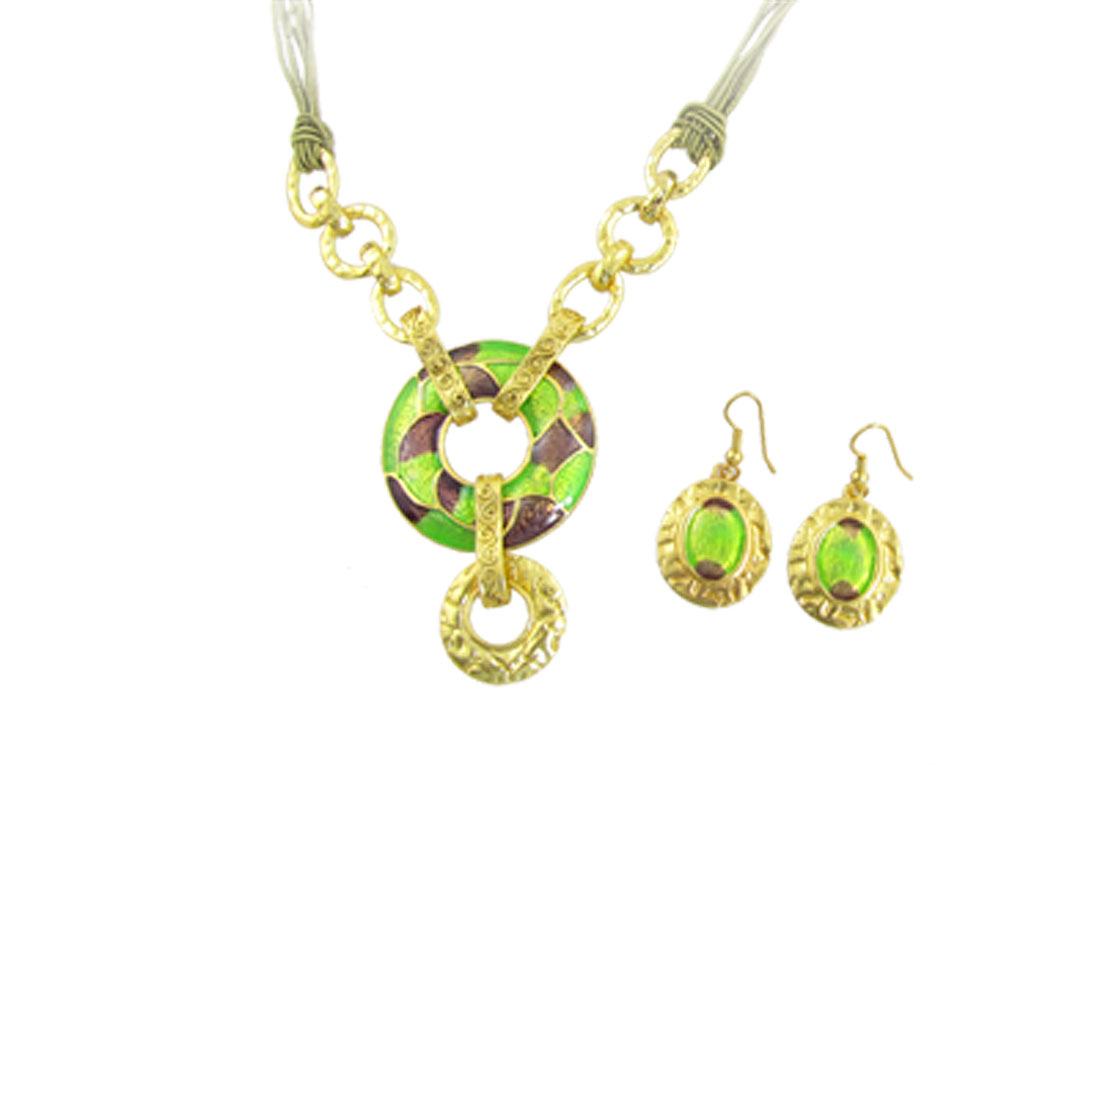 Assorted Color Circle Pendant Necklace Earrings Set for Lady